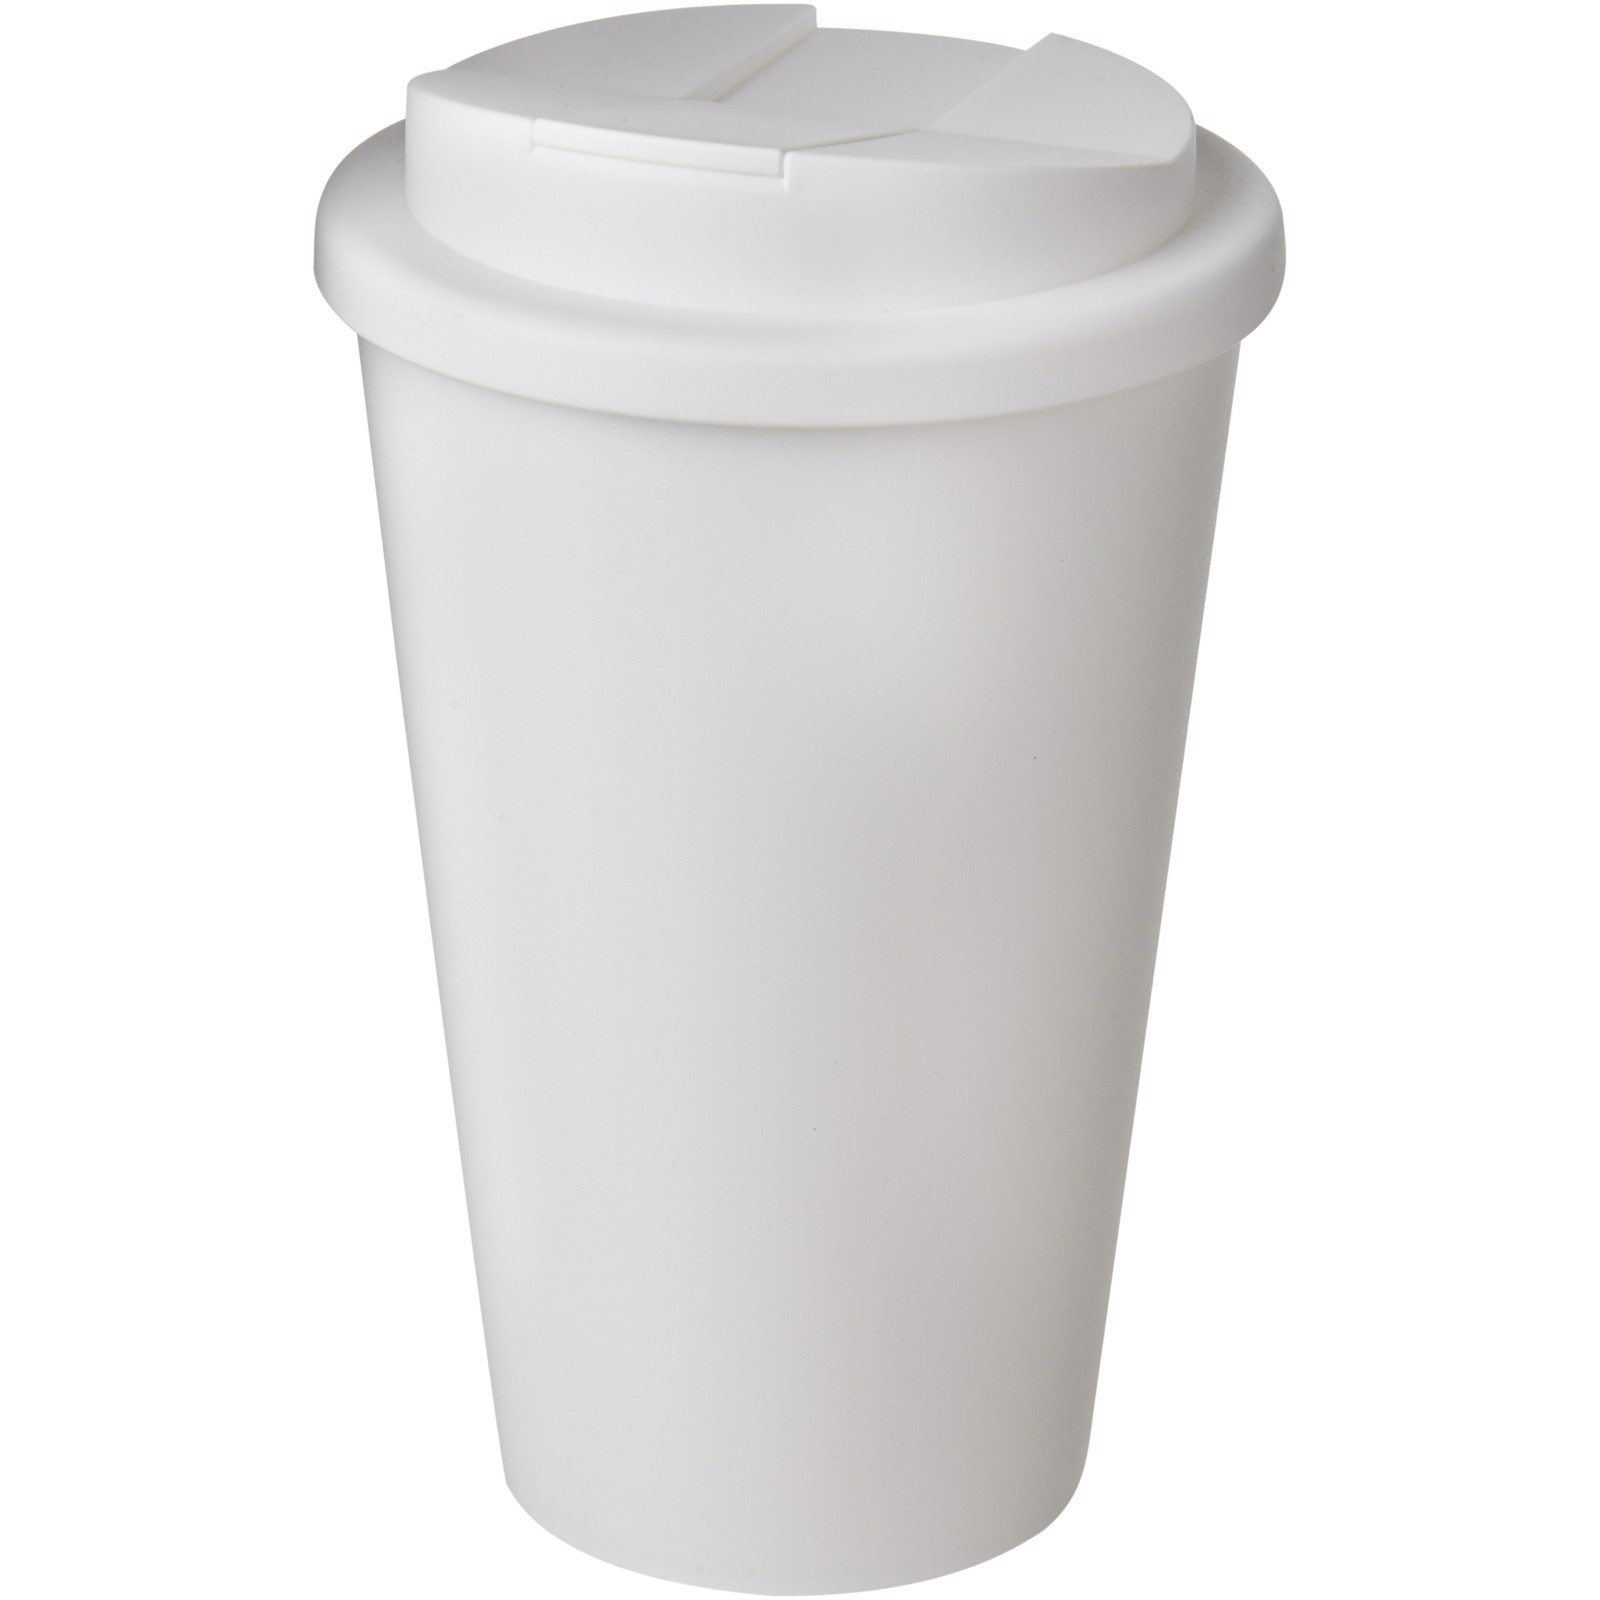 Americano® 350 ml tumbler with spill-proof lid - White